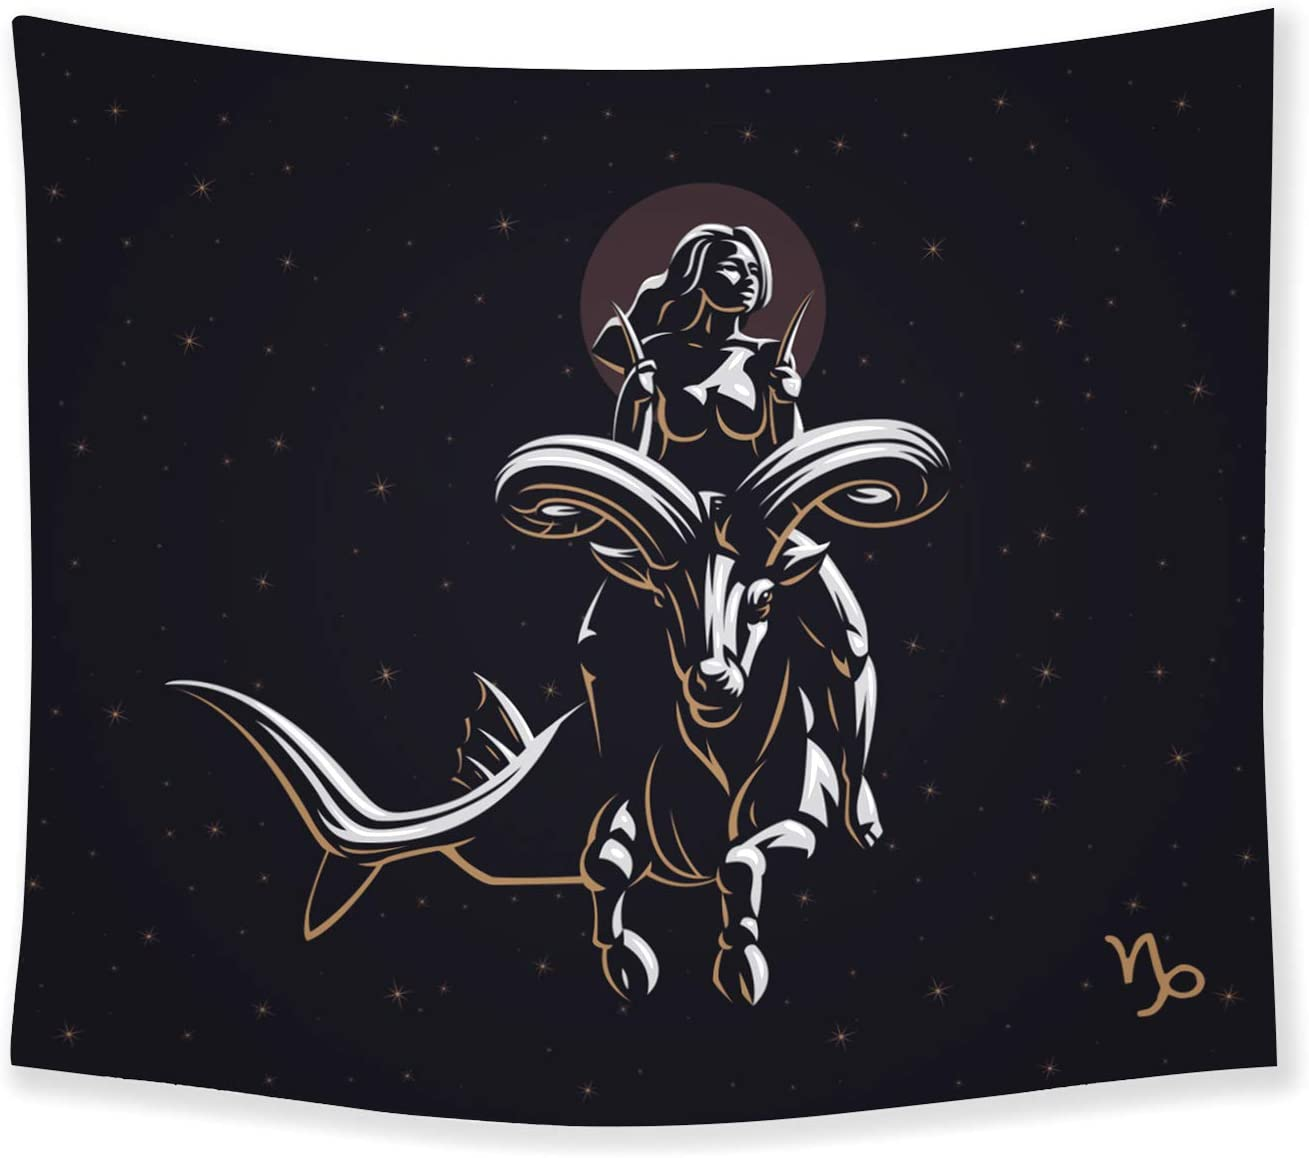 THE UNIVERSAL SIGNS Astrology Horoscope Zodiac Tapestry Decor Wall Hanging (Capricorn) Blanket Bedspread Beach Towels Picnic Mat Home Decor